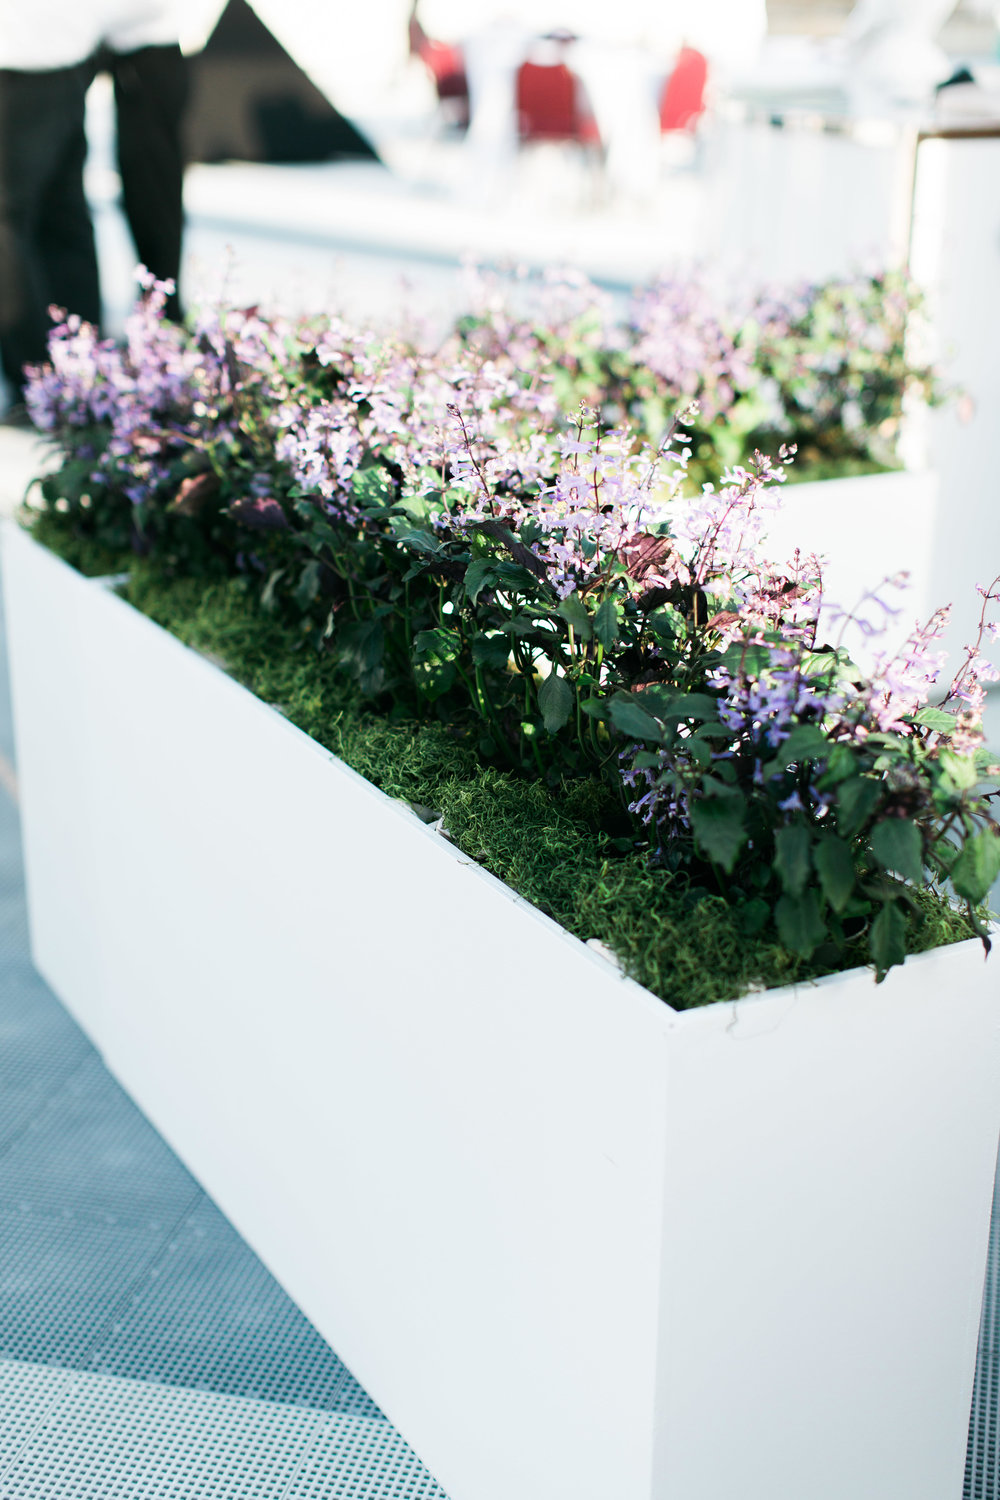 Curate-HFWF-Uncorked-Lavender-Planter.jpg